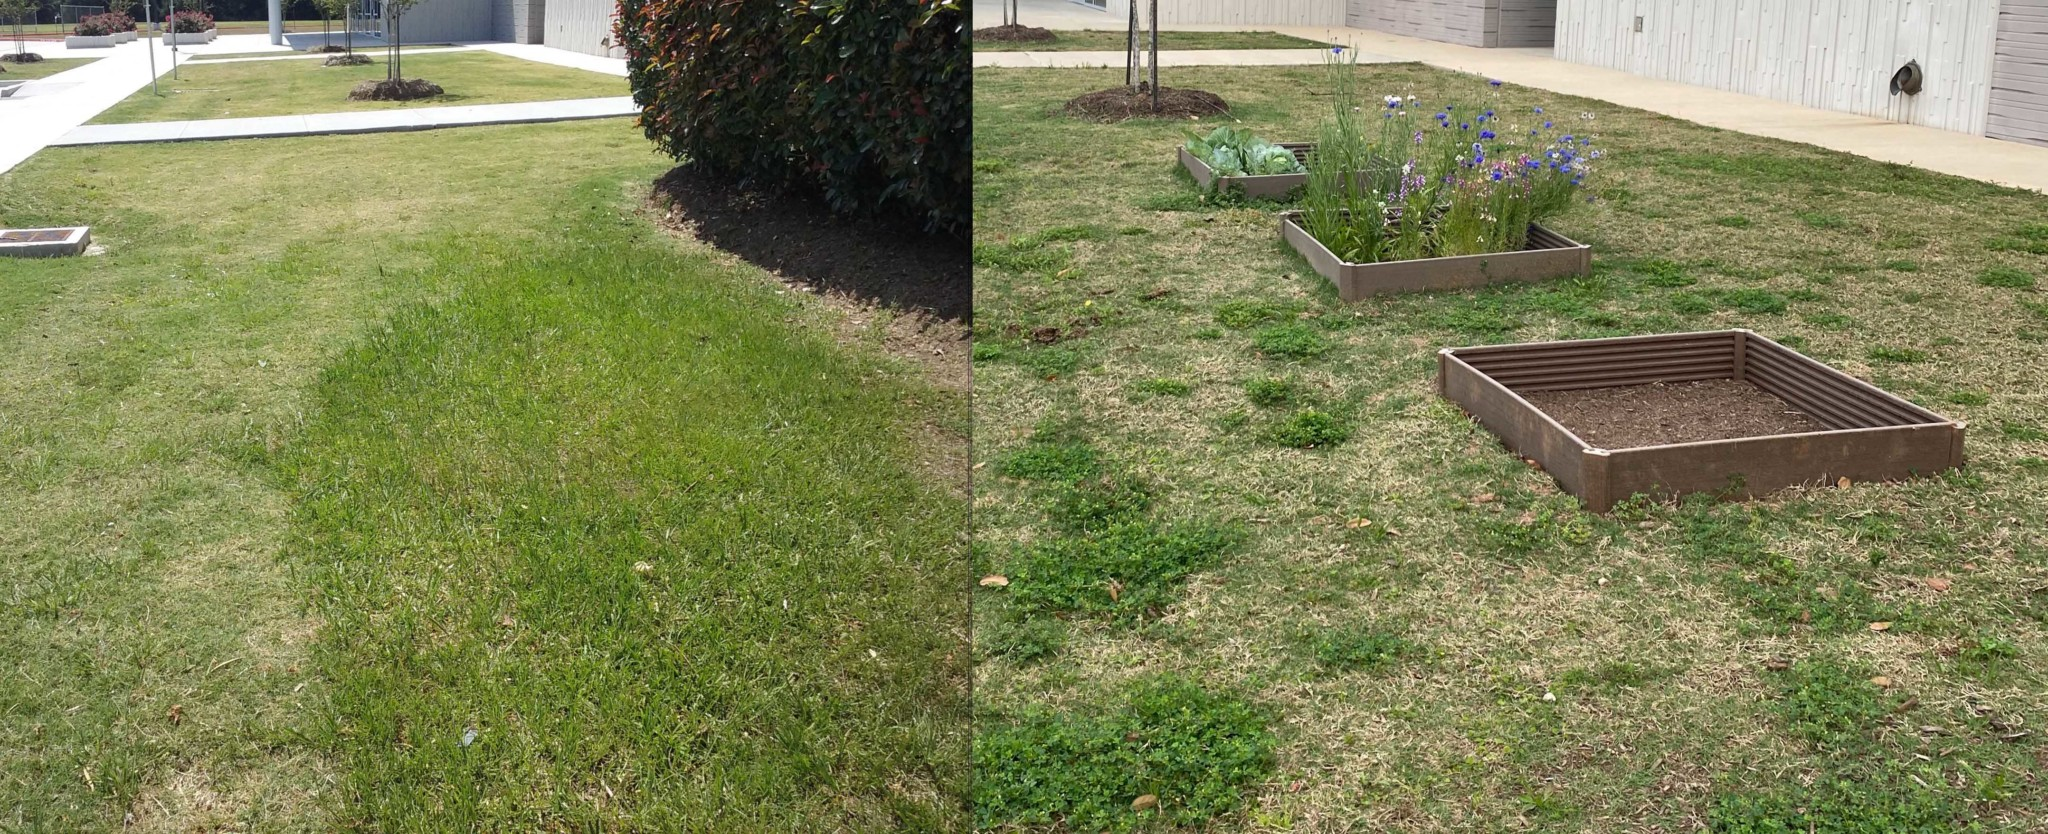 Before and after the planting.